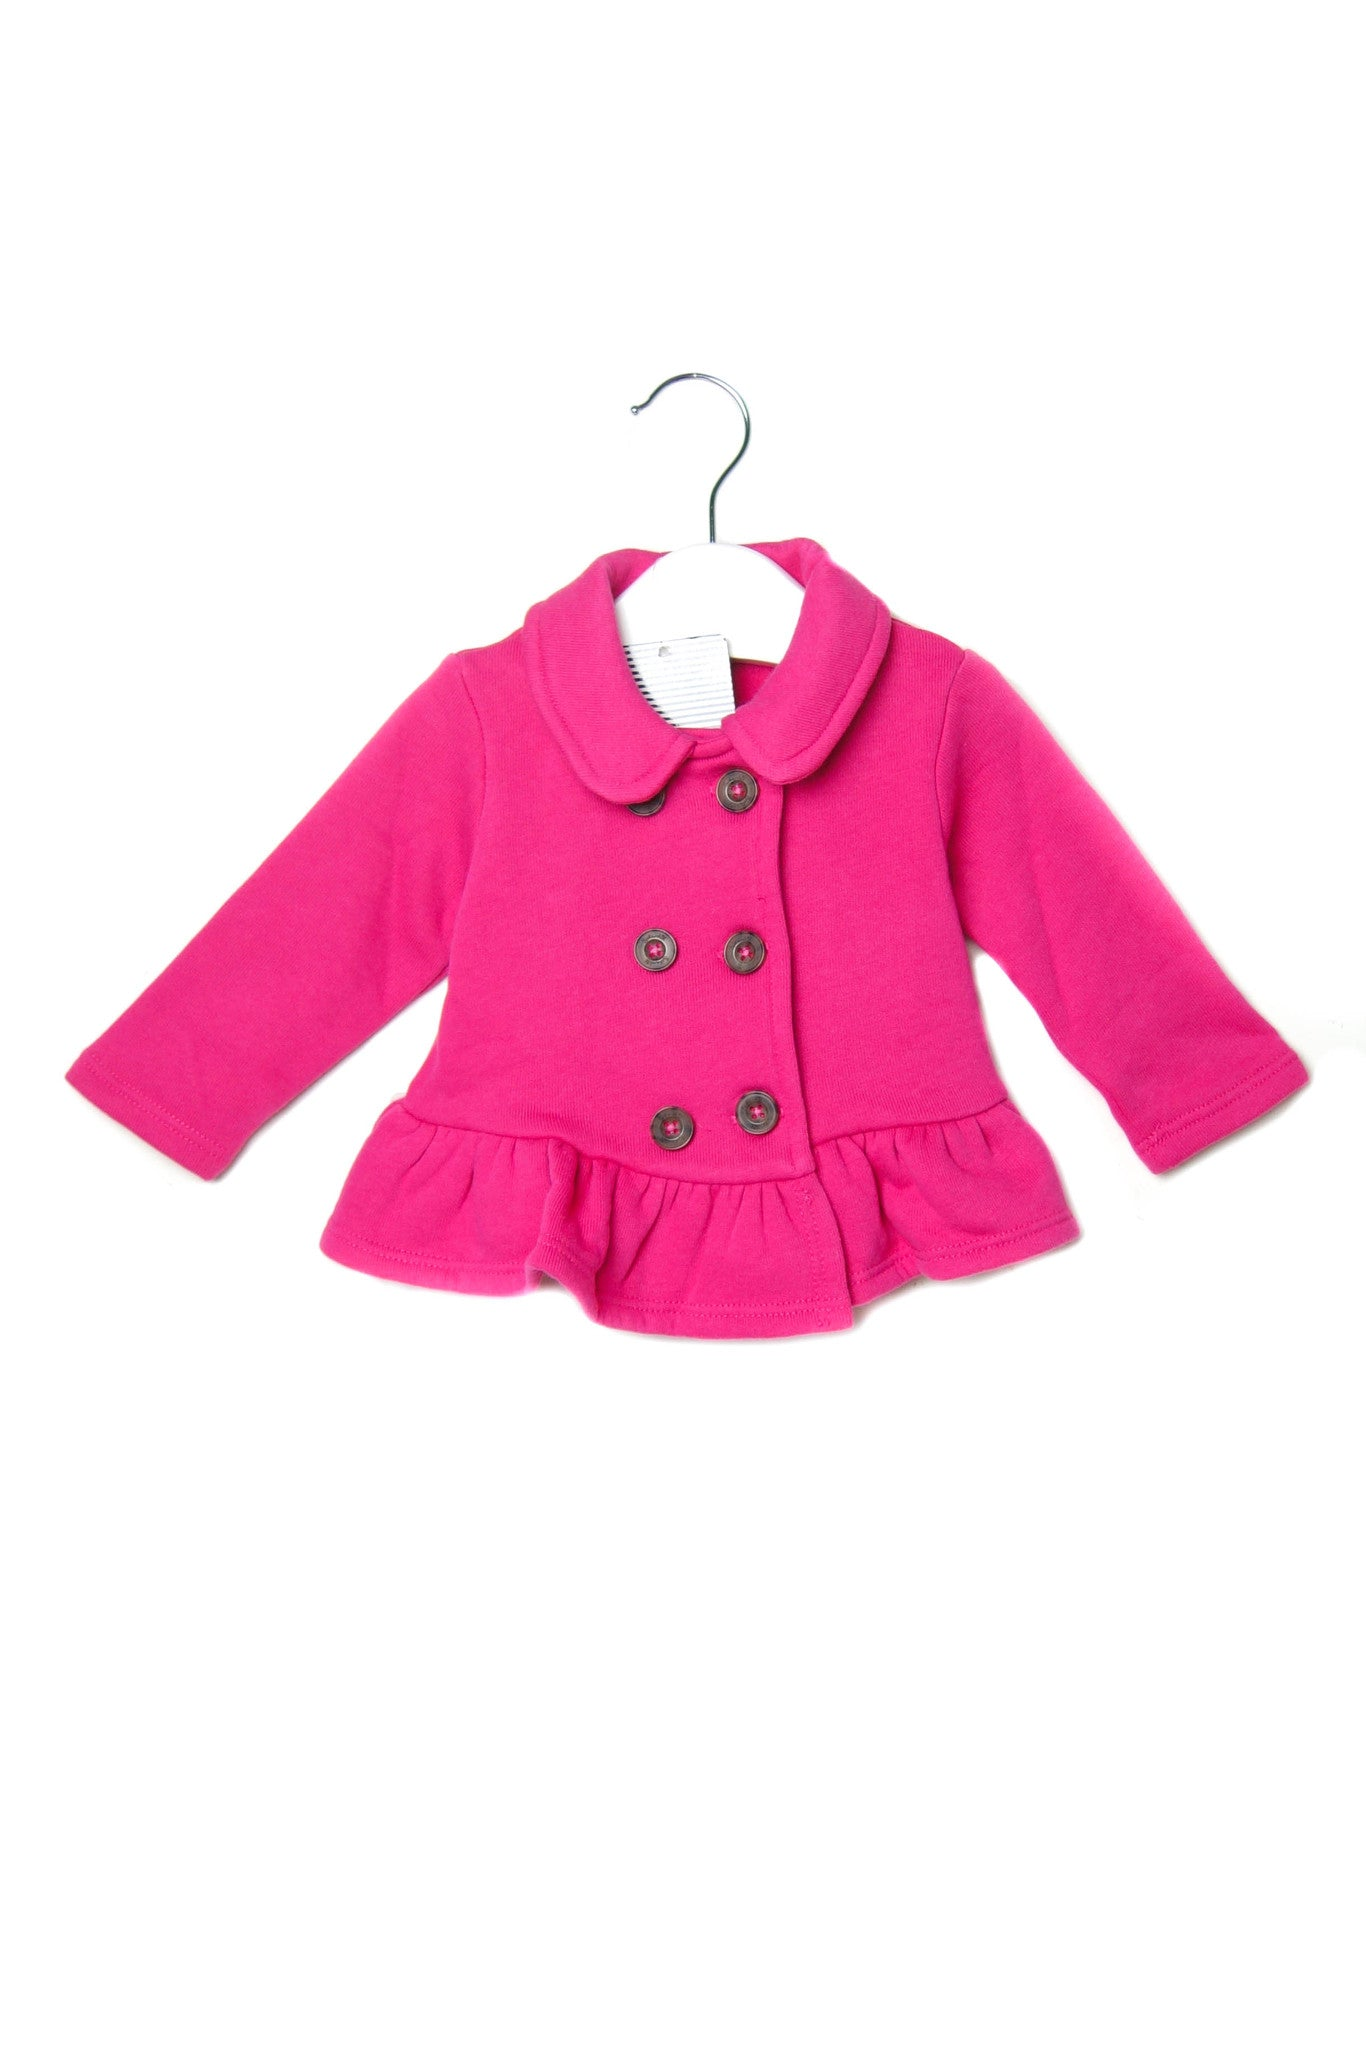 10001421BG~Jacket 3-6M, Splendid at Retykle - Online Baby & Kids Clothing Up to 90% Off